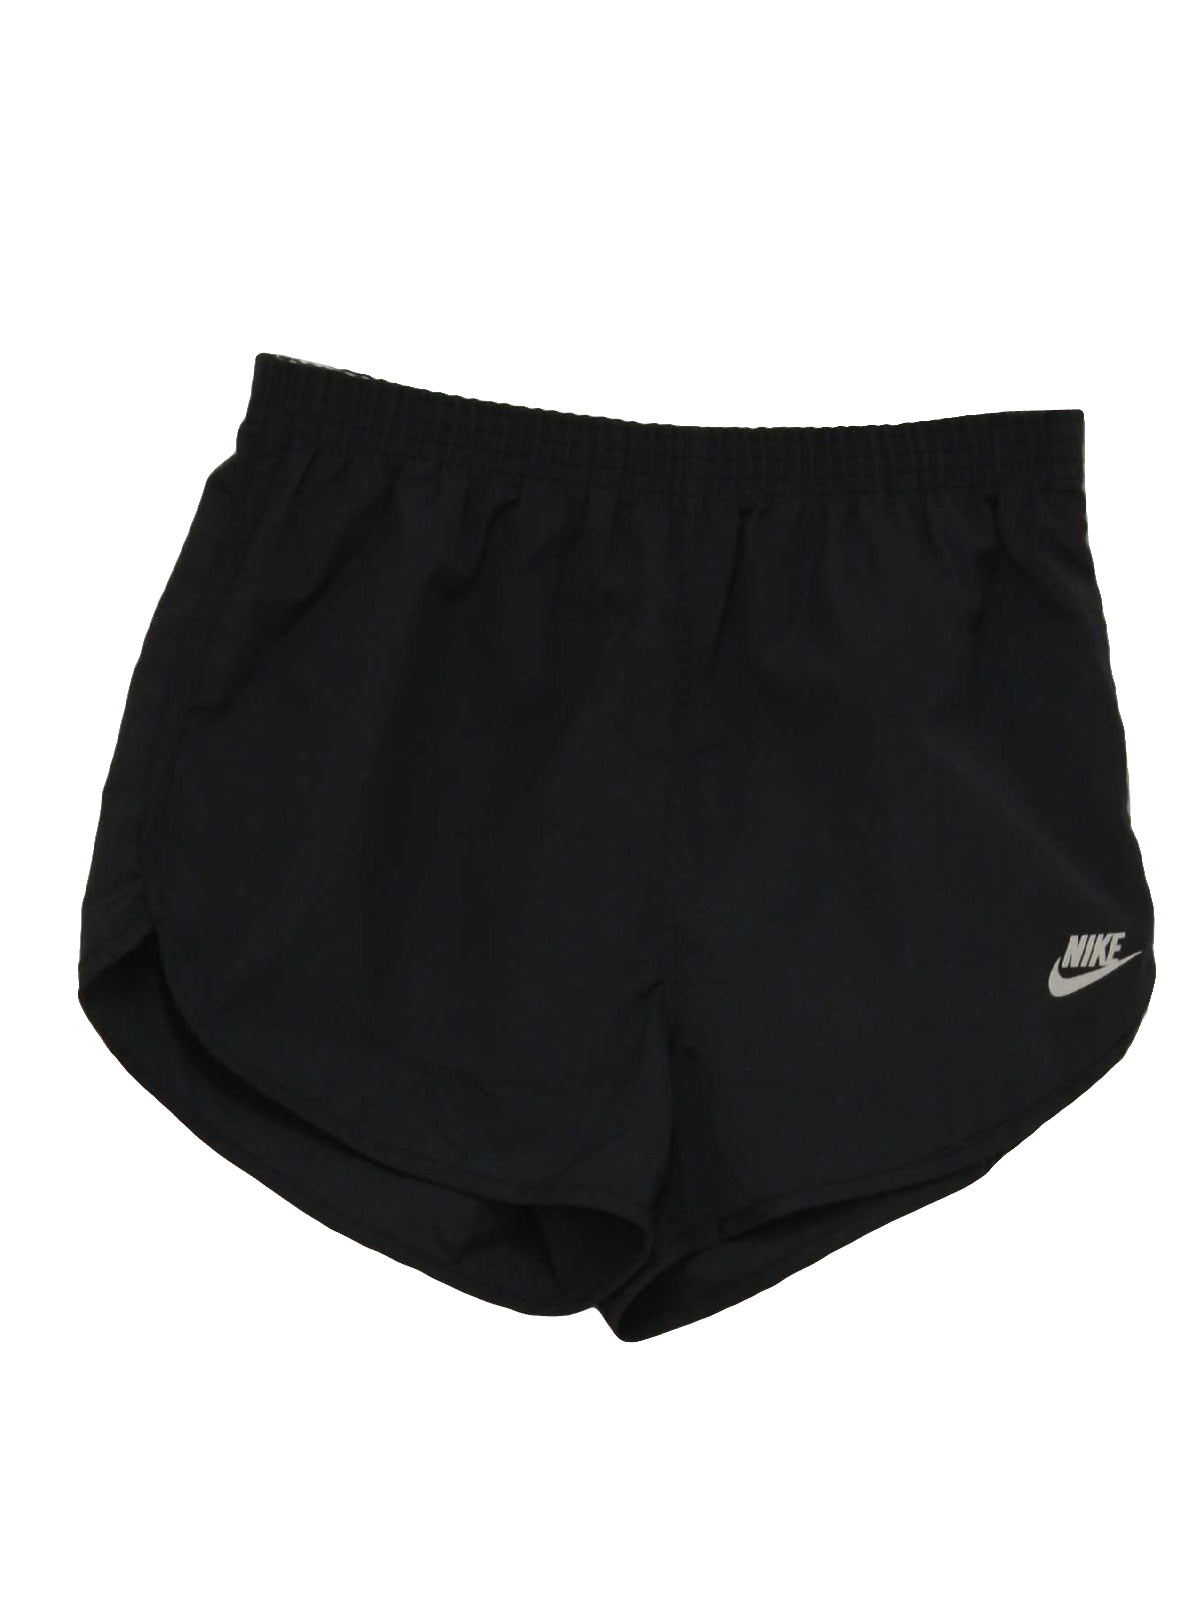 Vintage 1980's Shorts: 80s -Nike Made in USA- Mens black